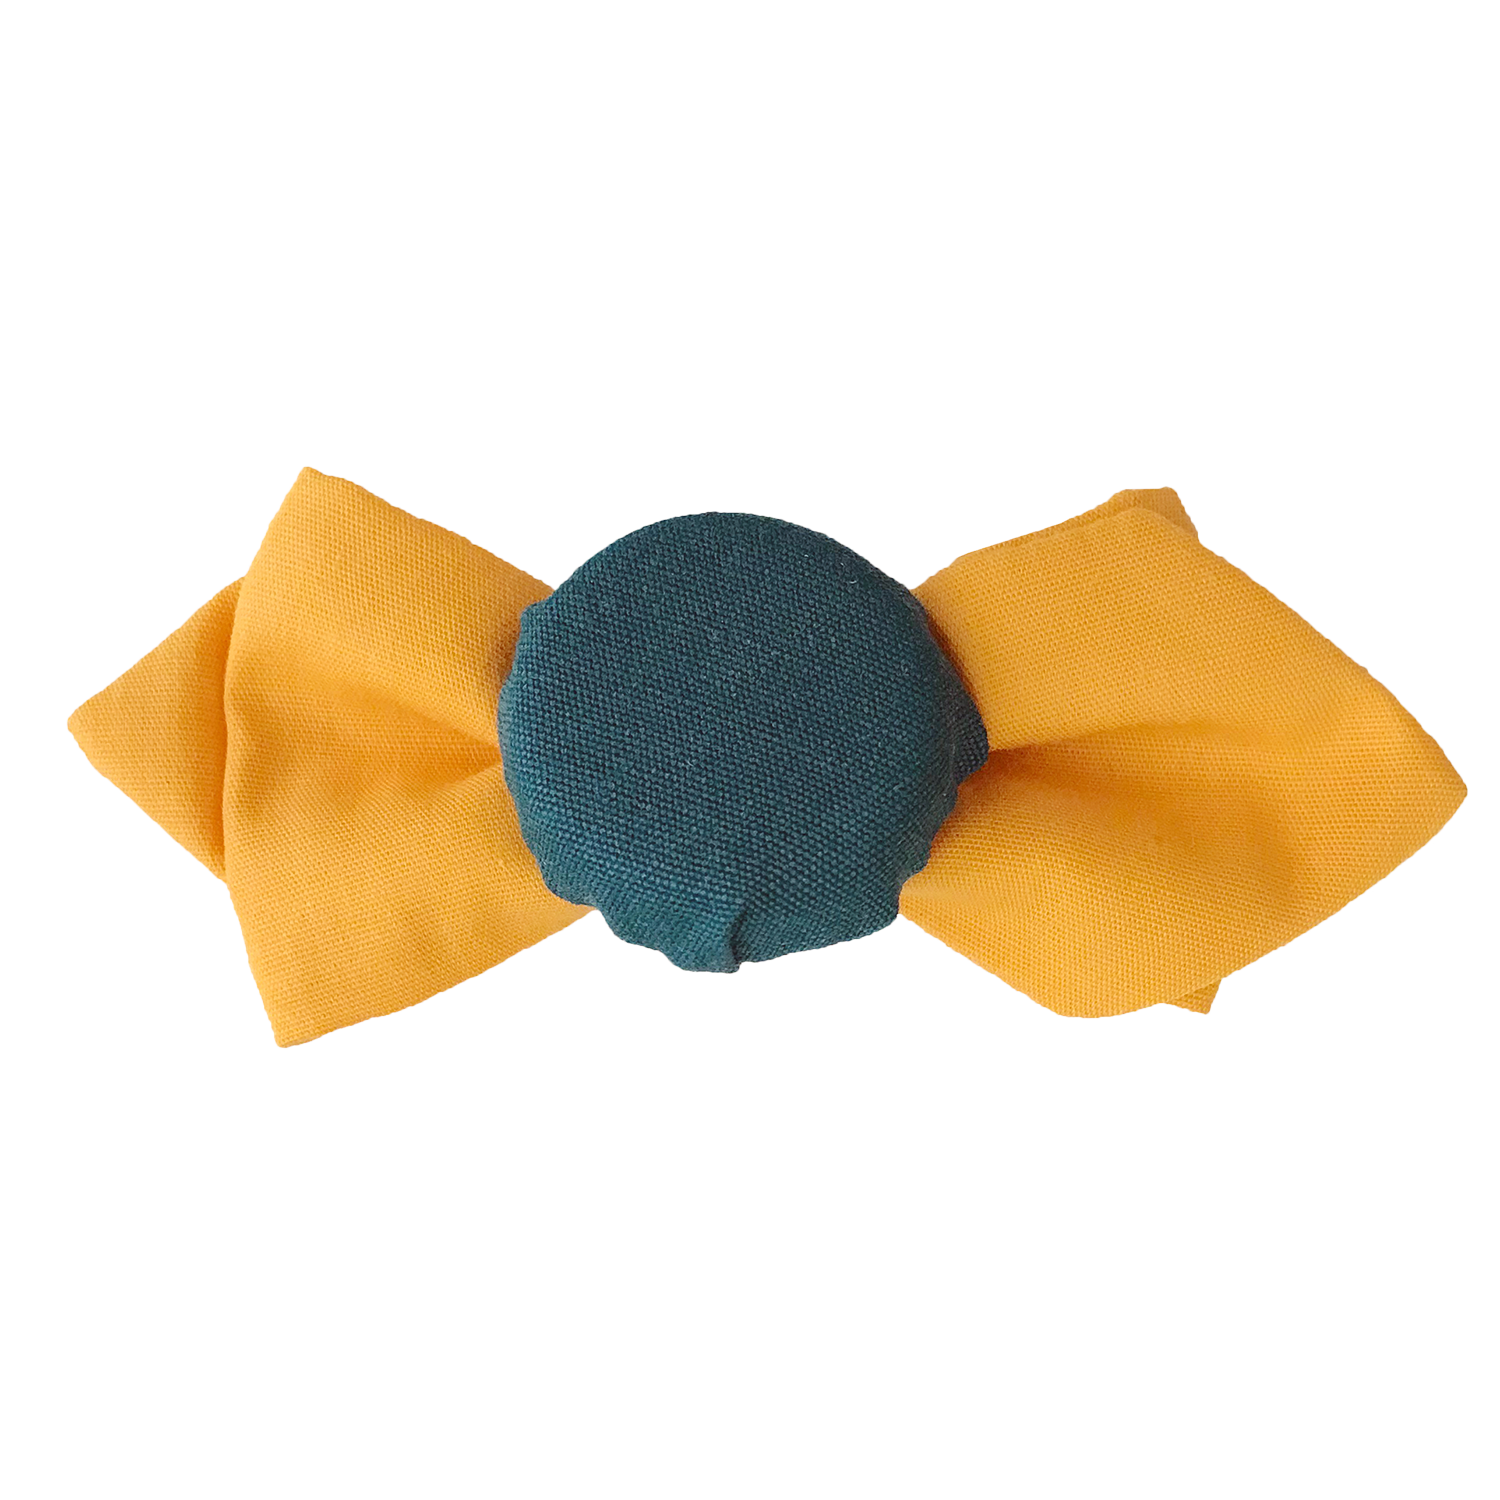 Hair pin in the shape of a mini orange bow tie with teal fabric covered bottle cap